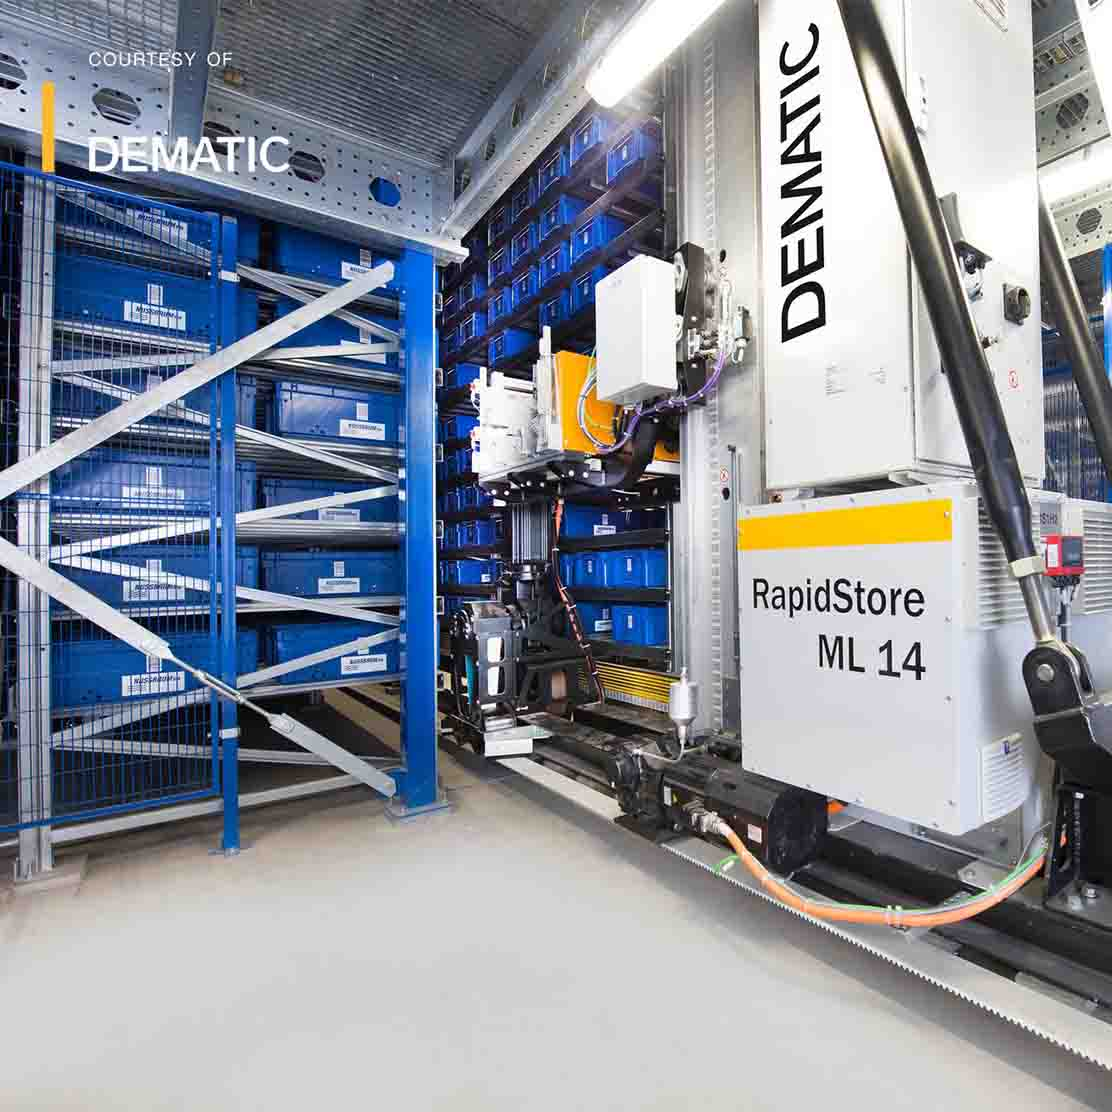 10 3 058 Rapidstore As Rs Systems - About Dematic - Shoppa's Material Handling